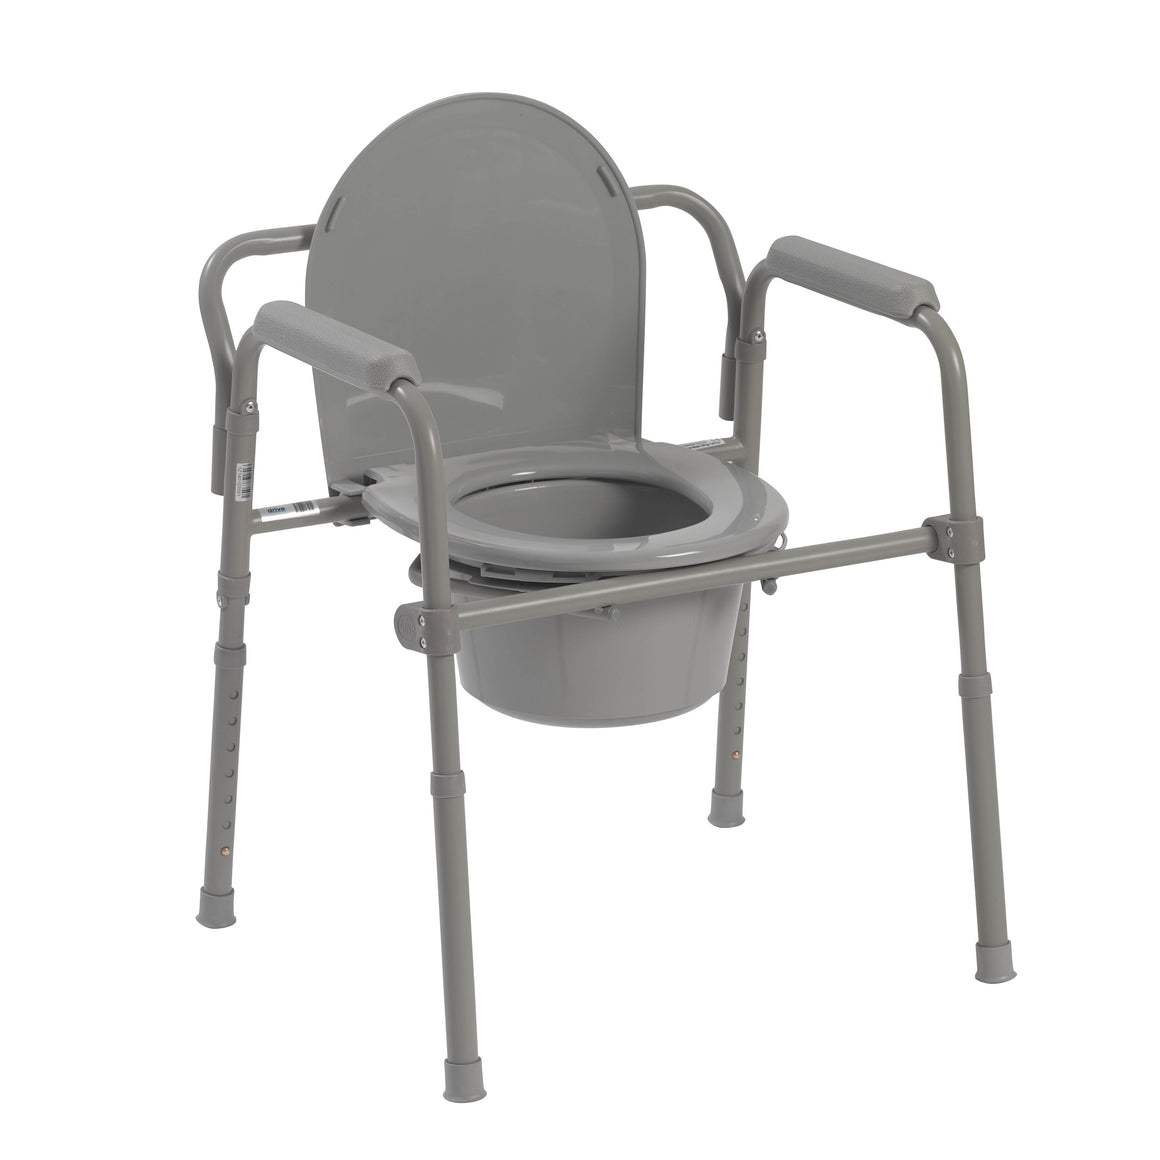 Folding Steel Commode by Drive Medical #11148N4